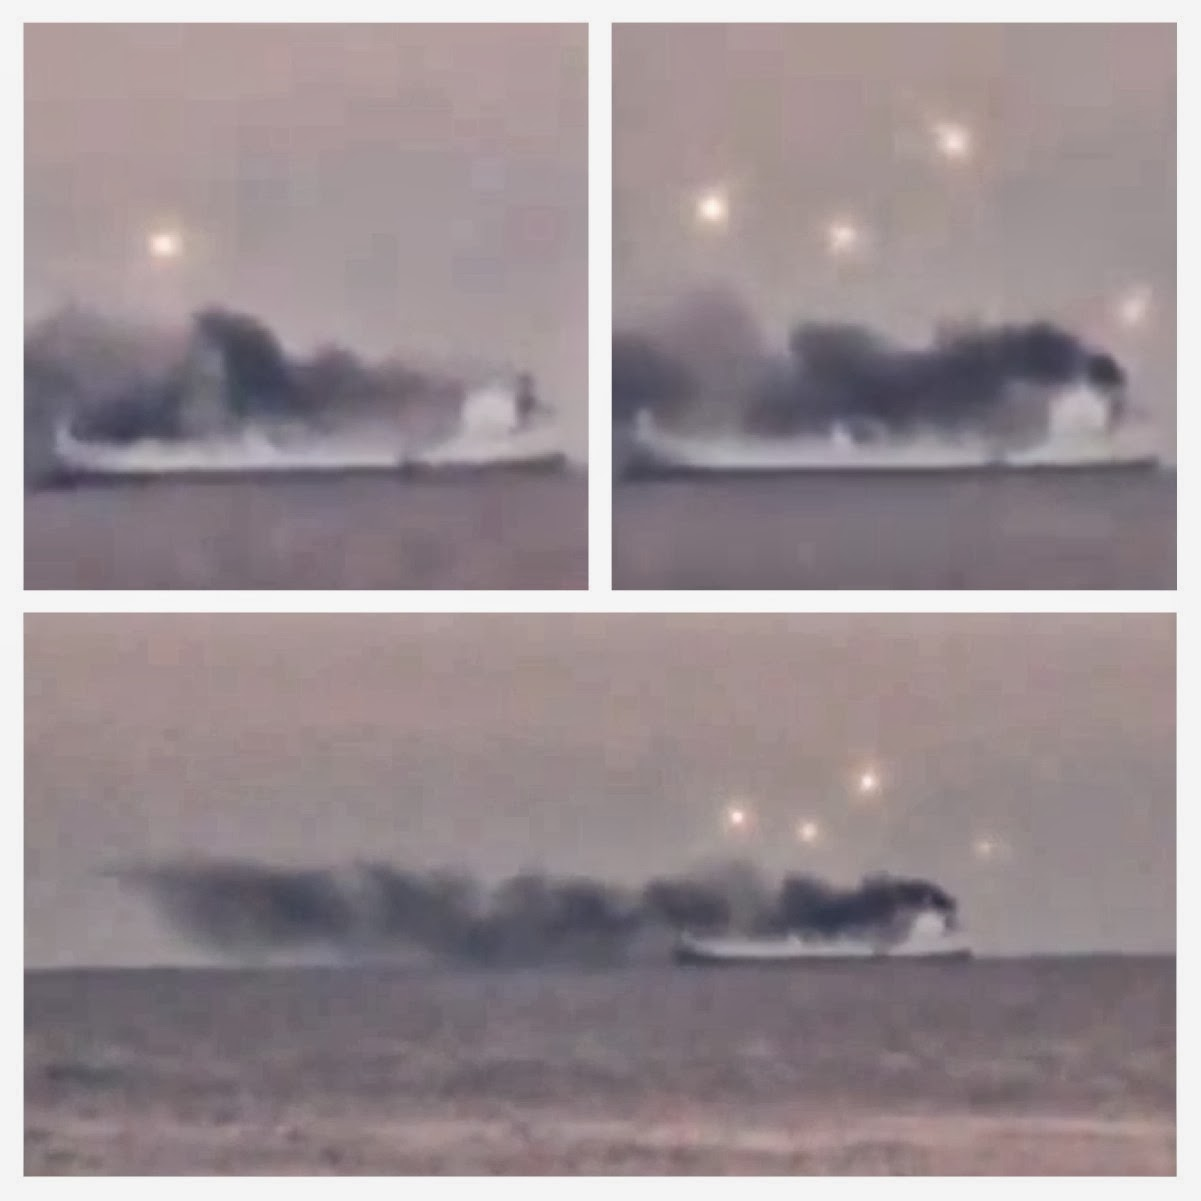 UFO SIGHTINGS DAILY: Glowing UFOs Appear Over Smoking Ship Off